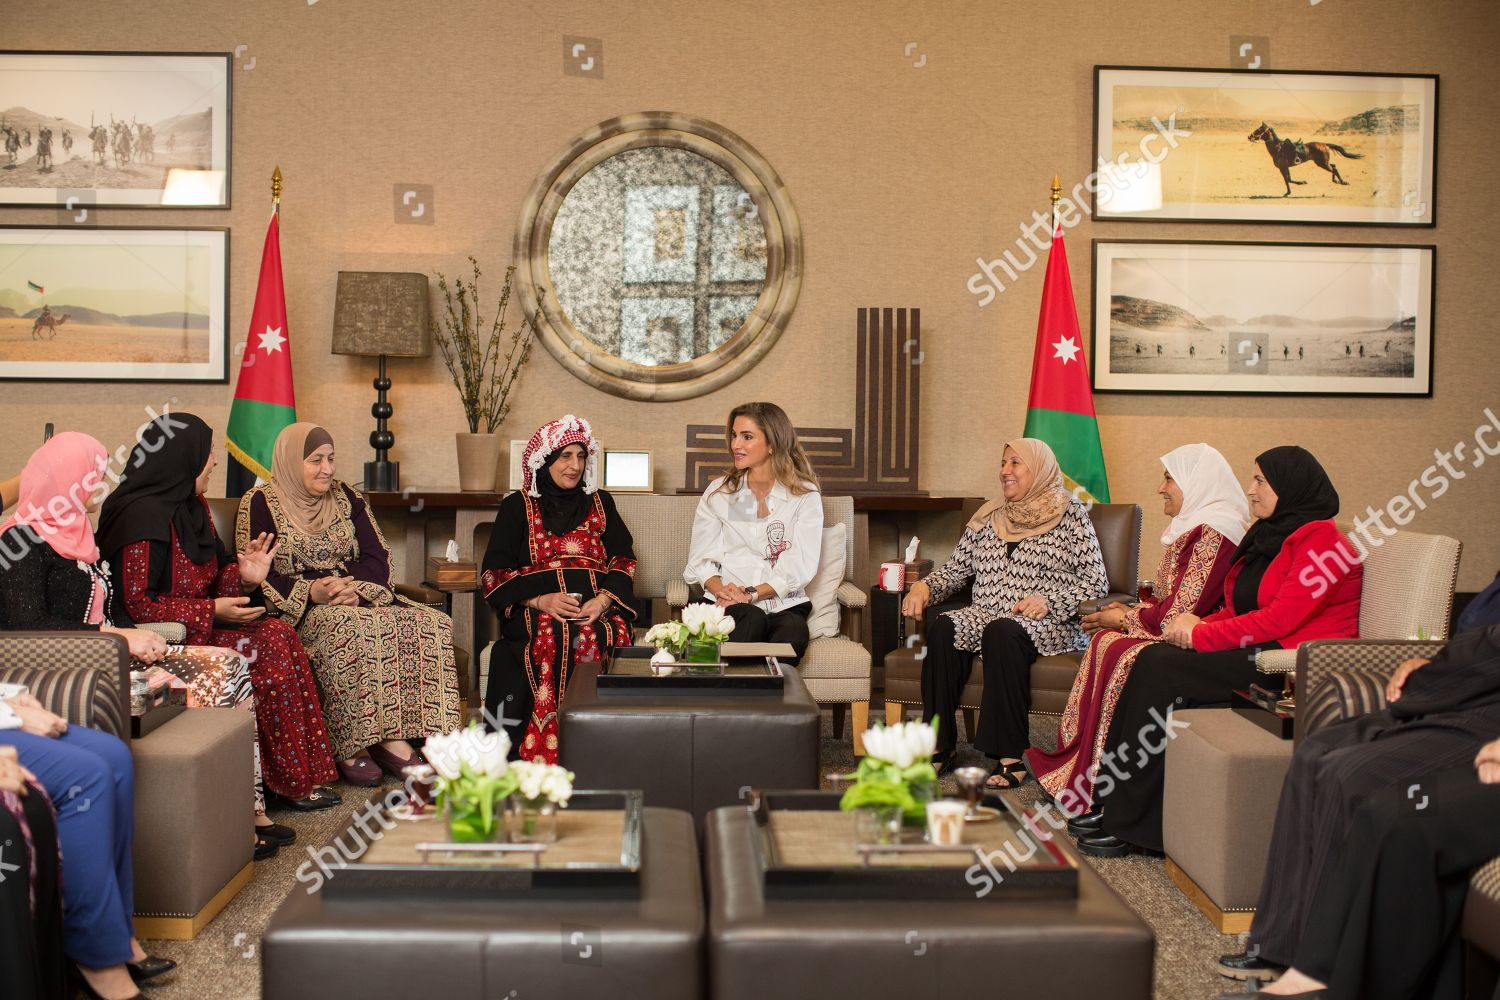 CASA REAL JORDANA - Página 11 Queen-rania-meets-with-female-artisanal-food-producers-amman-jordan-shutterstock-editorial-9855869d